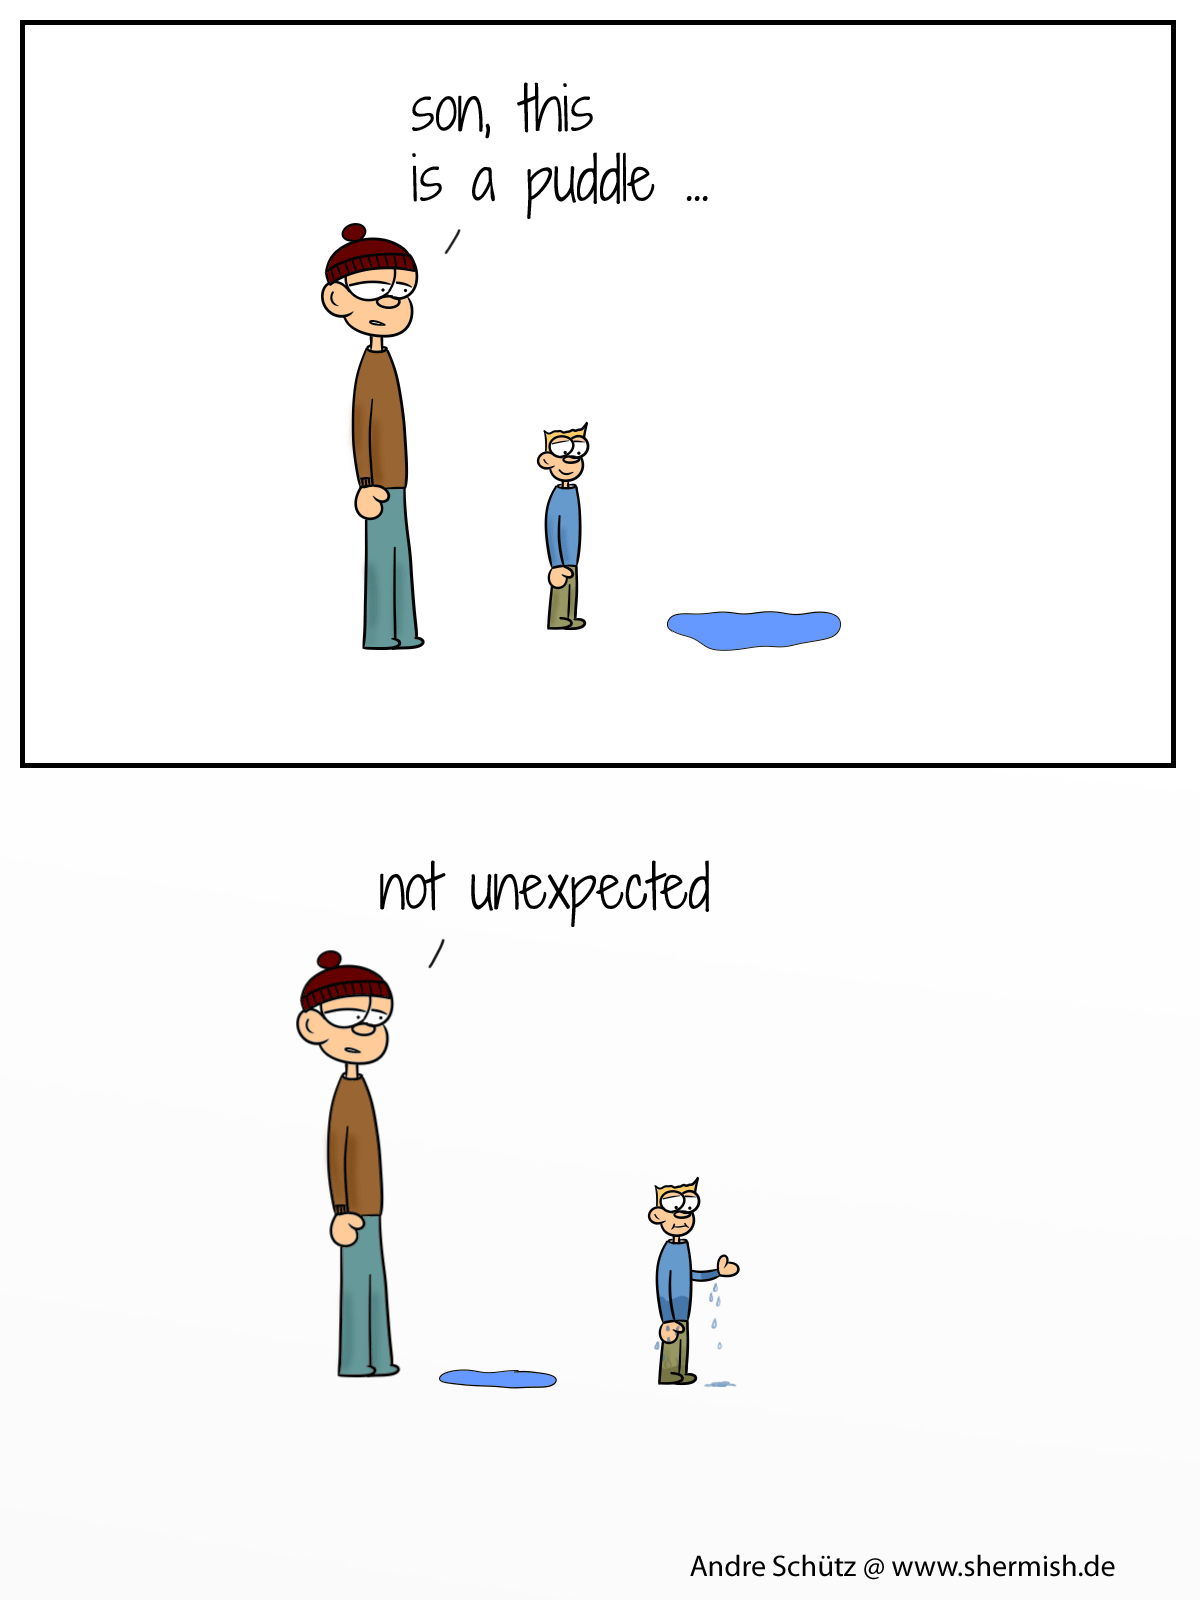 Kids like water